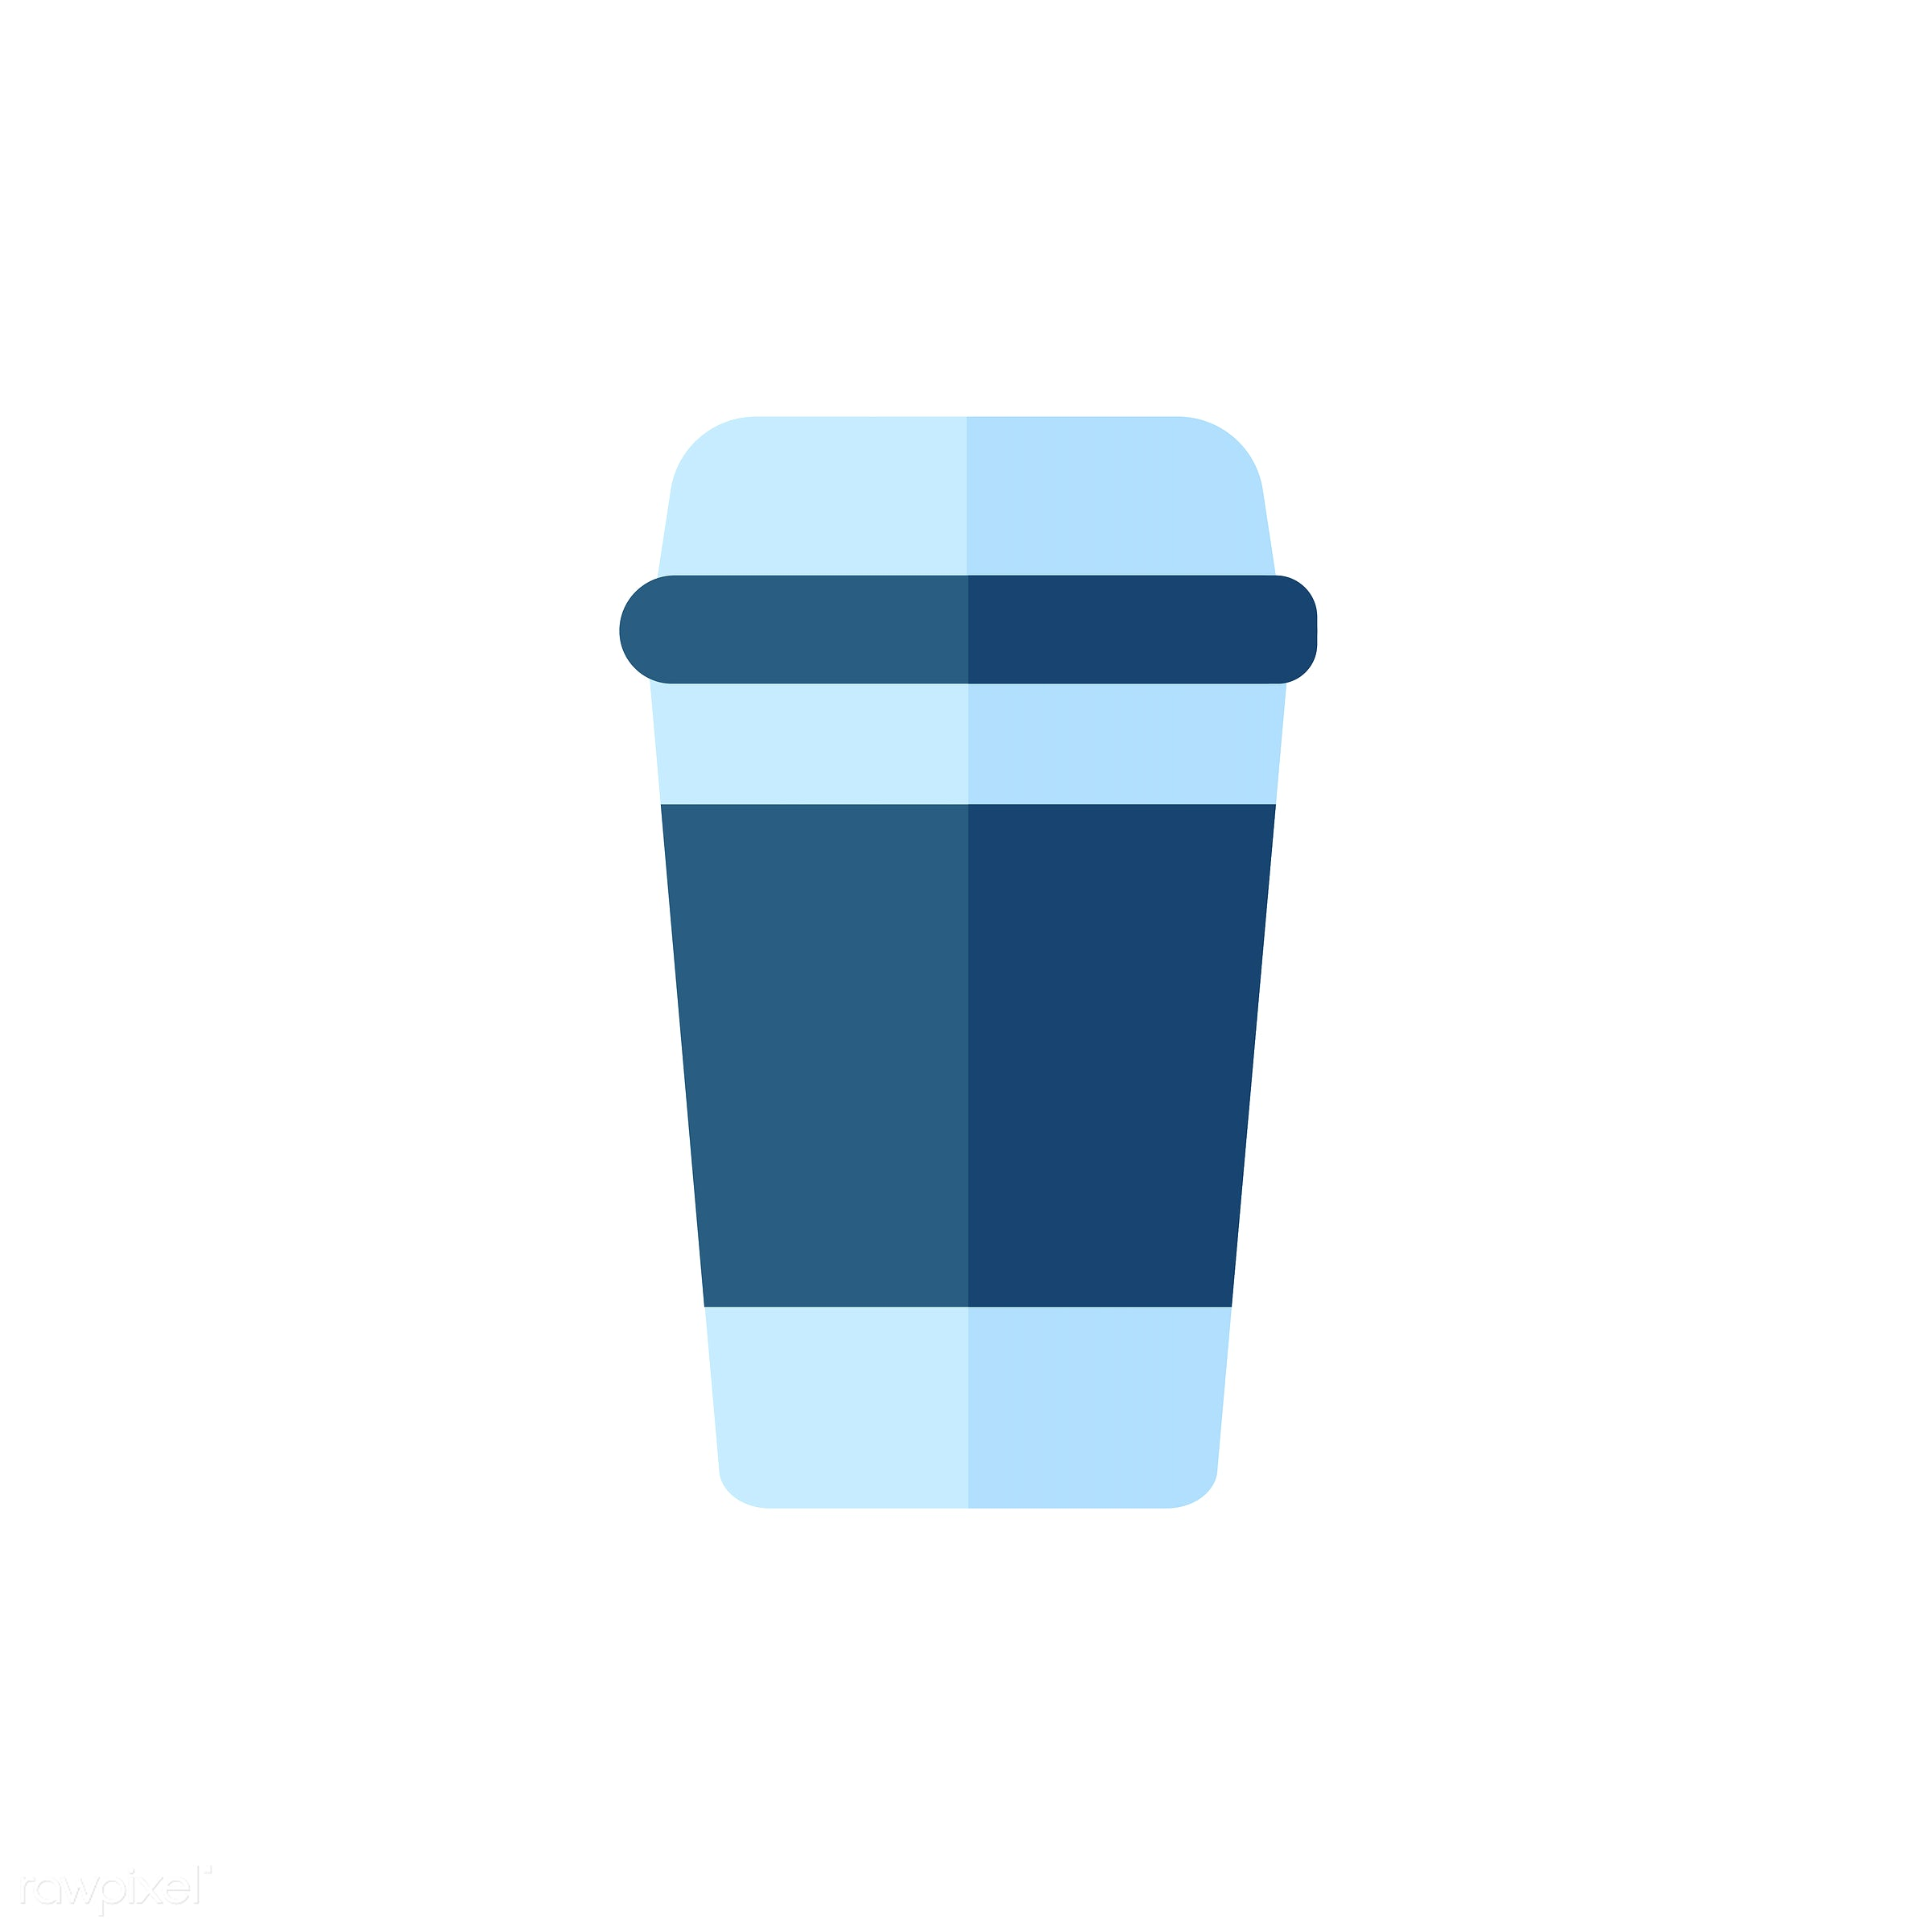 vector, graphic, illustration, icon, symbol, colorful, cute, drink, beverage, water, blue, takeaway, takeaway cup, takeaway...